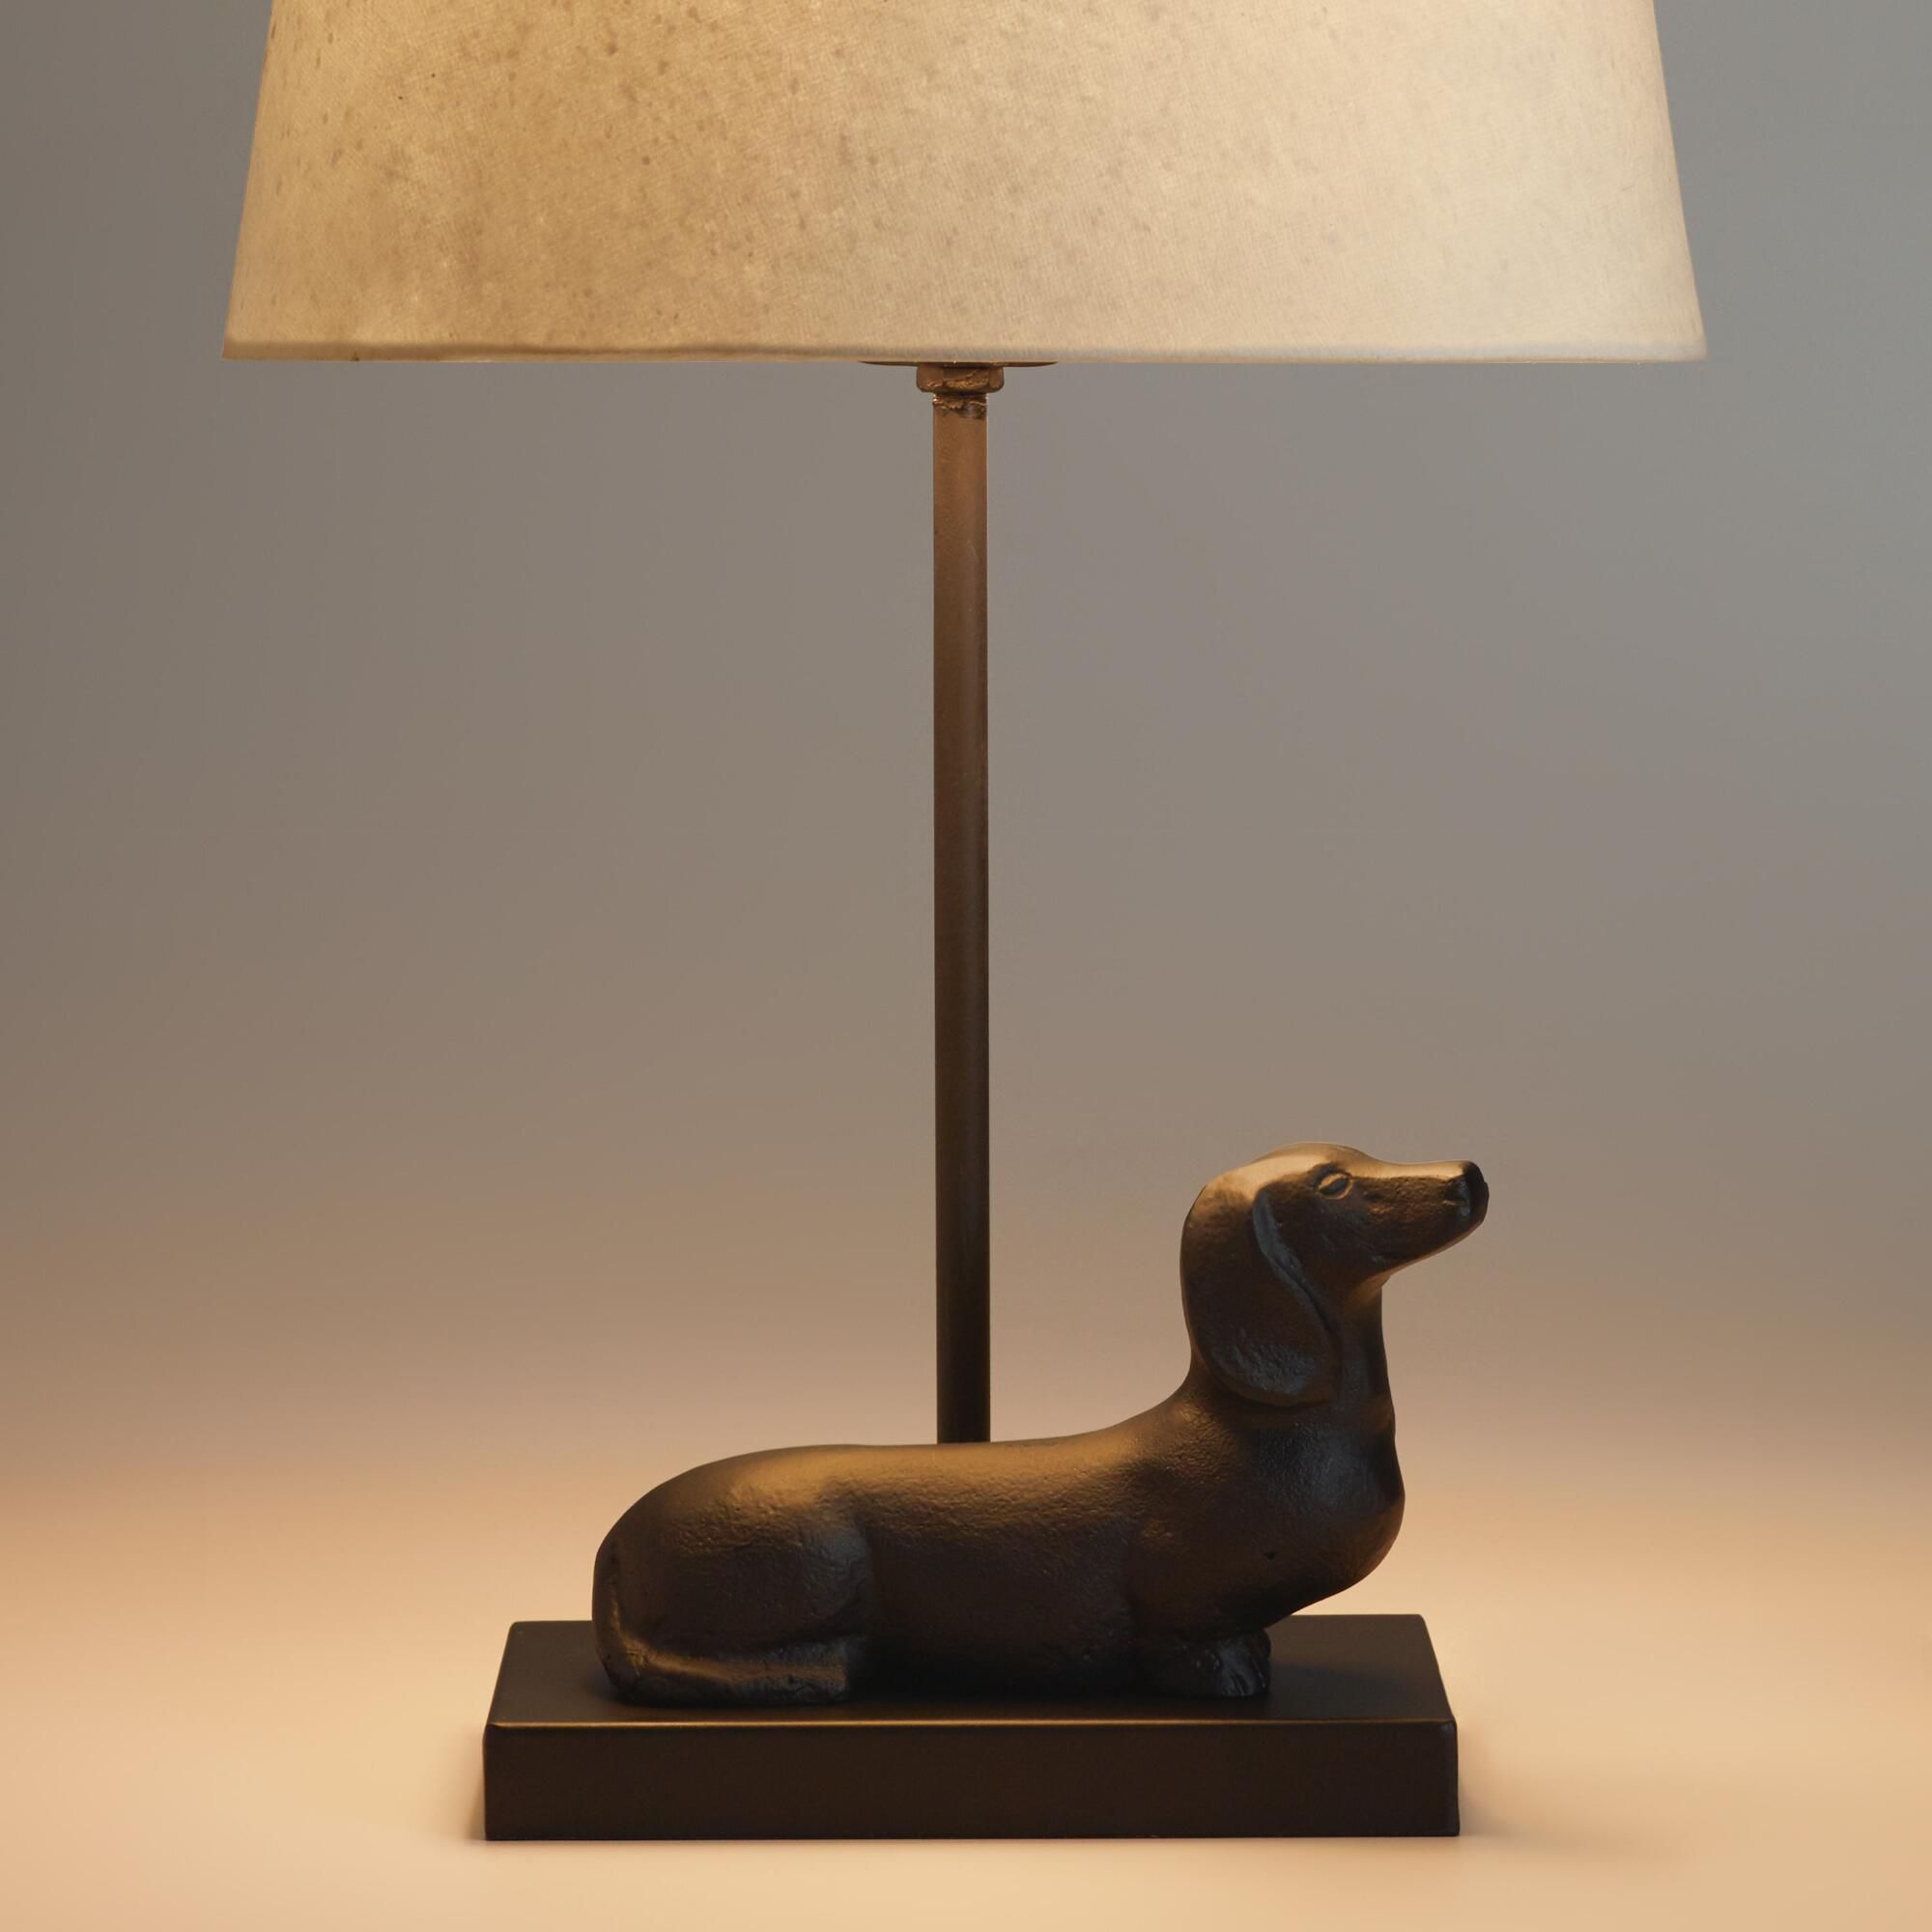 Dachshund Accent Lamp Base Lamp Accent Lamp Lamp Bases